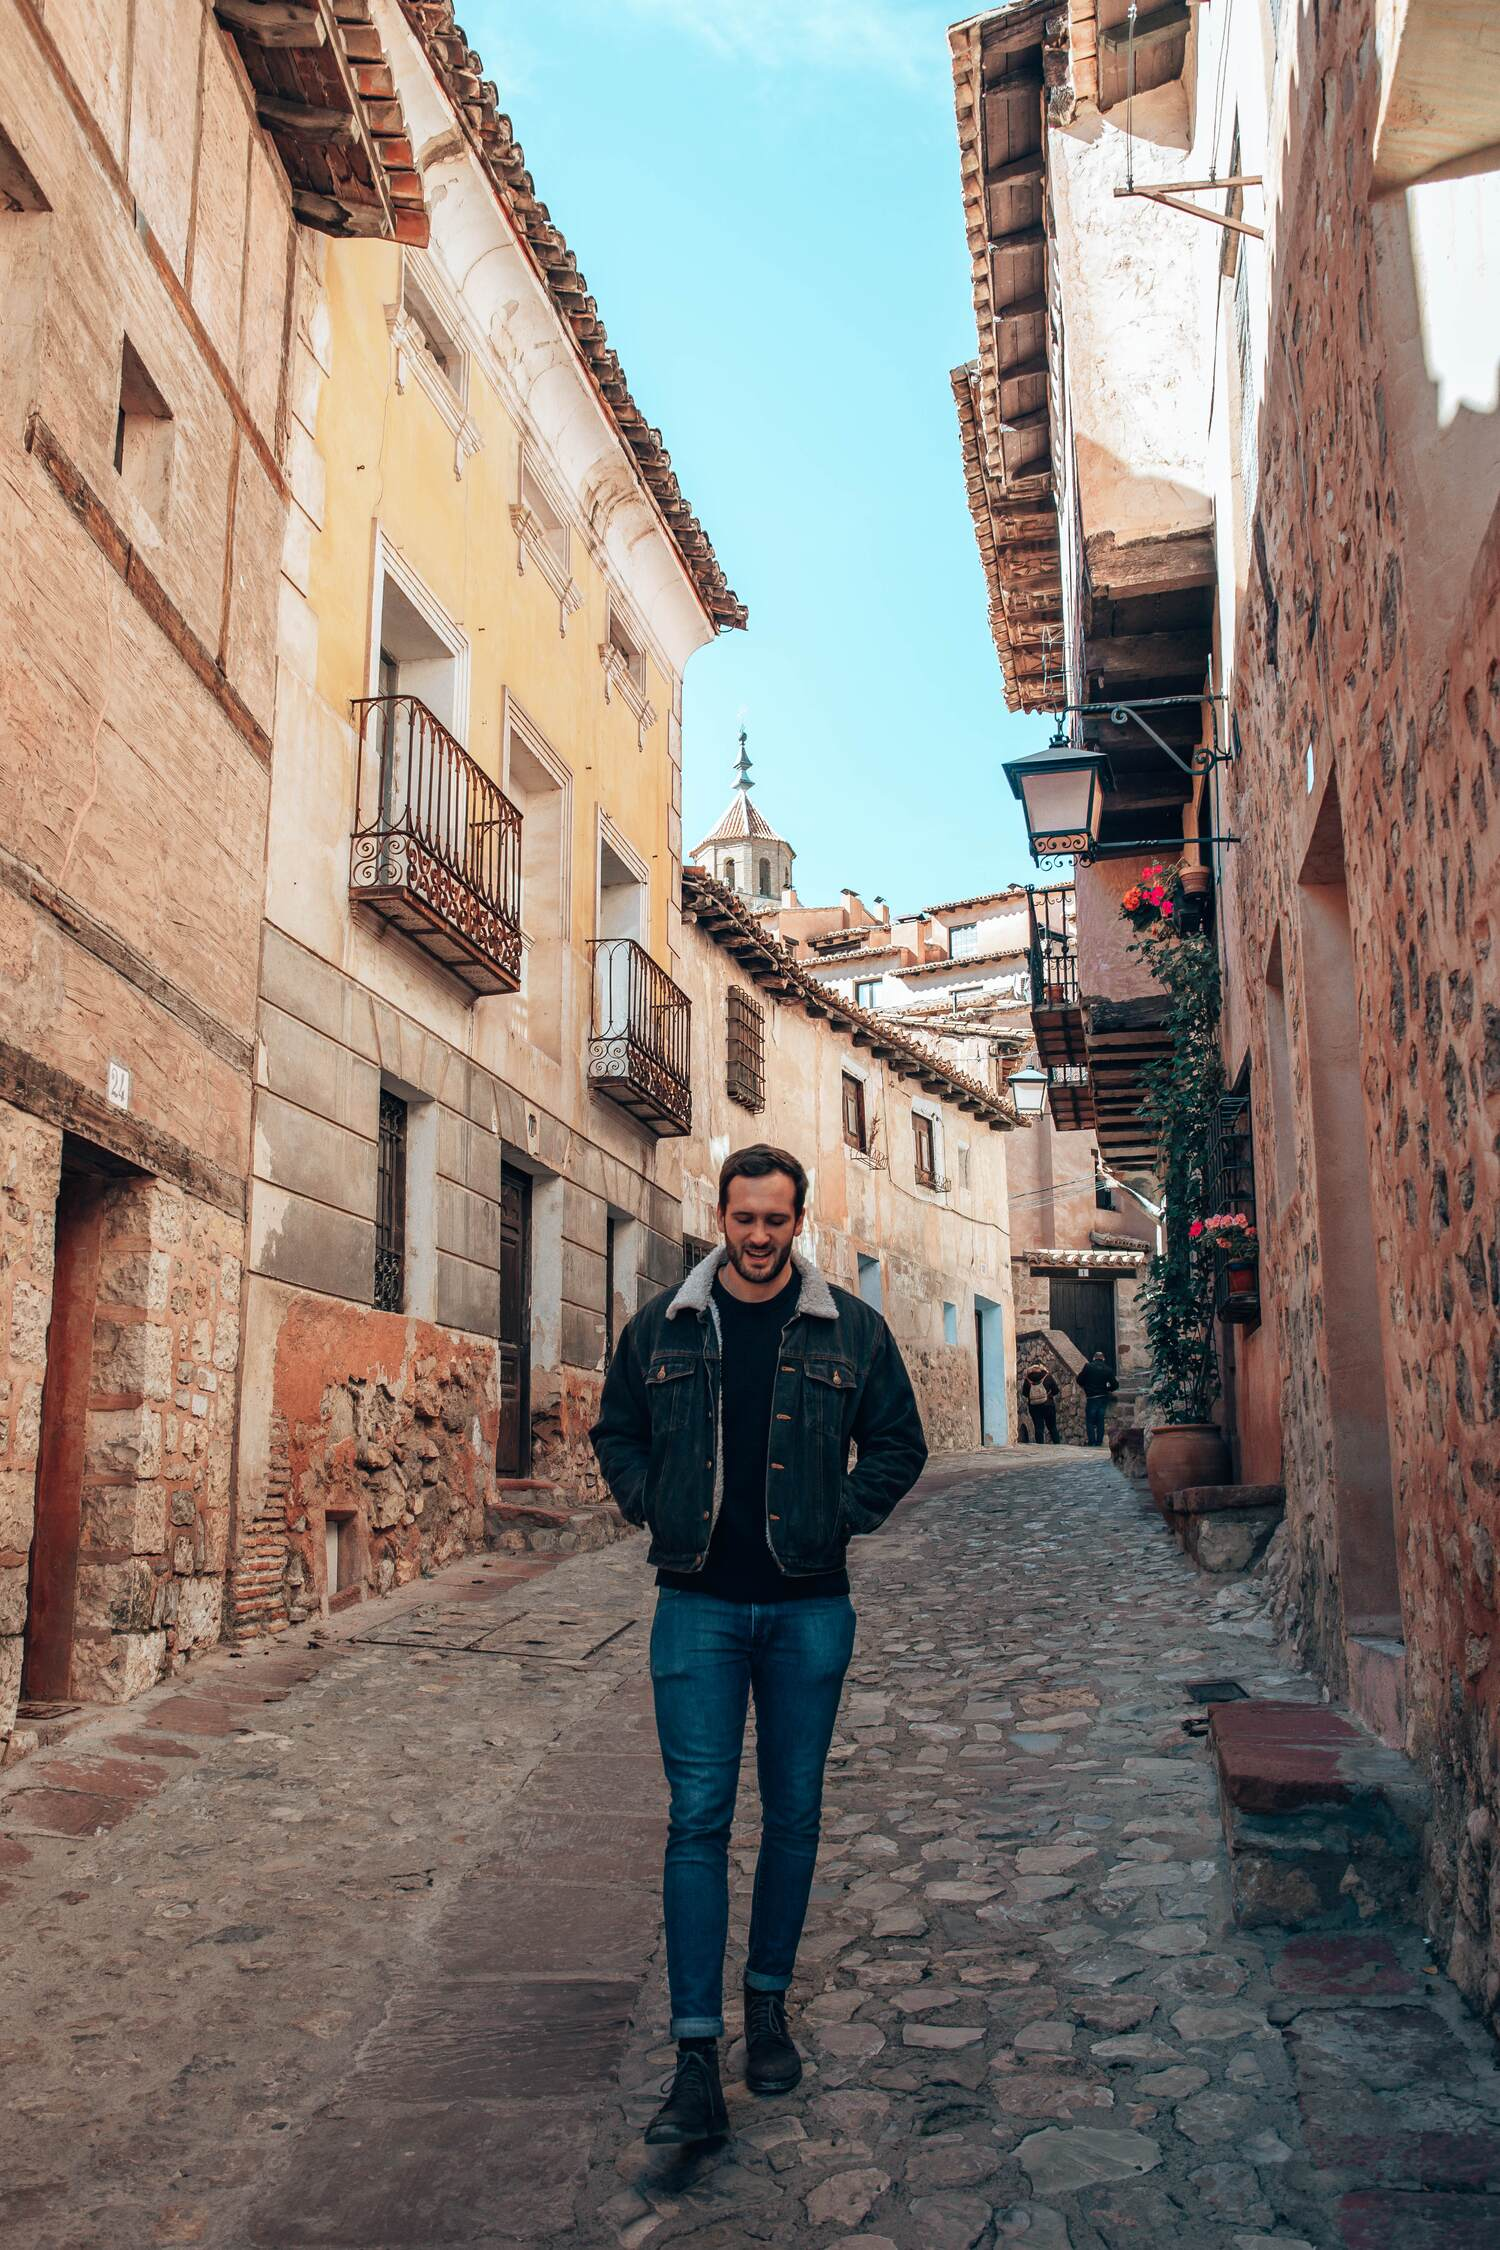 A guide to exploring the enchanting Albarracin in Spain.